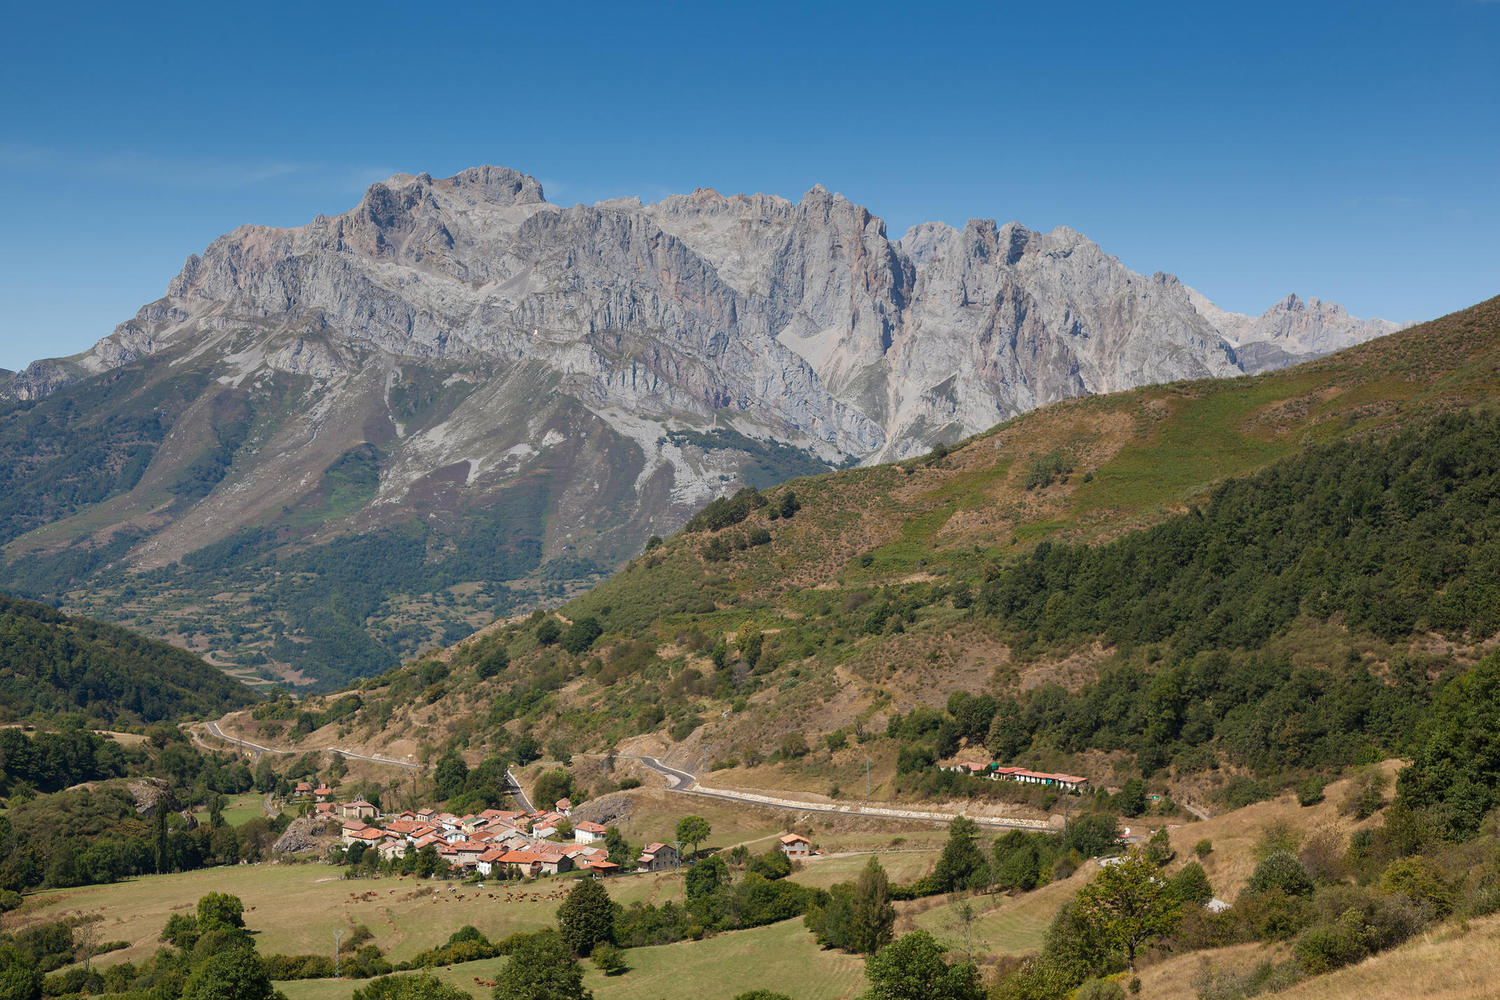 The valley of Valdeón as you walk down from the pass from Liébana valley.